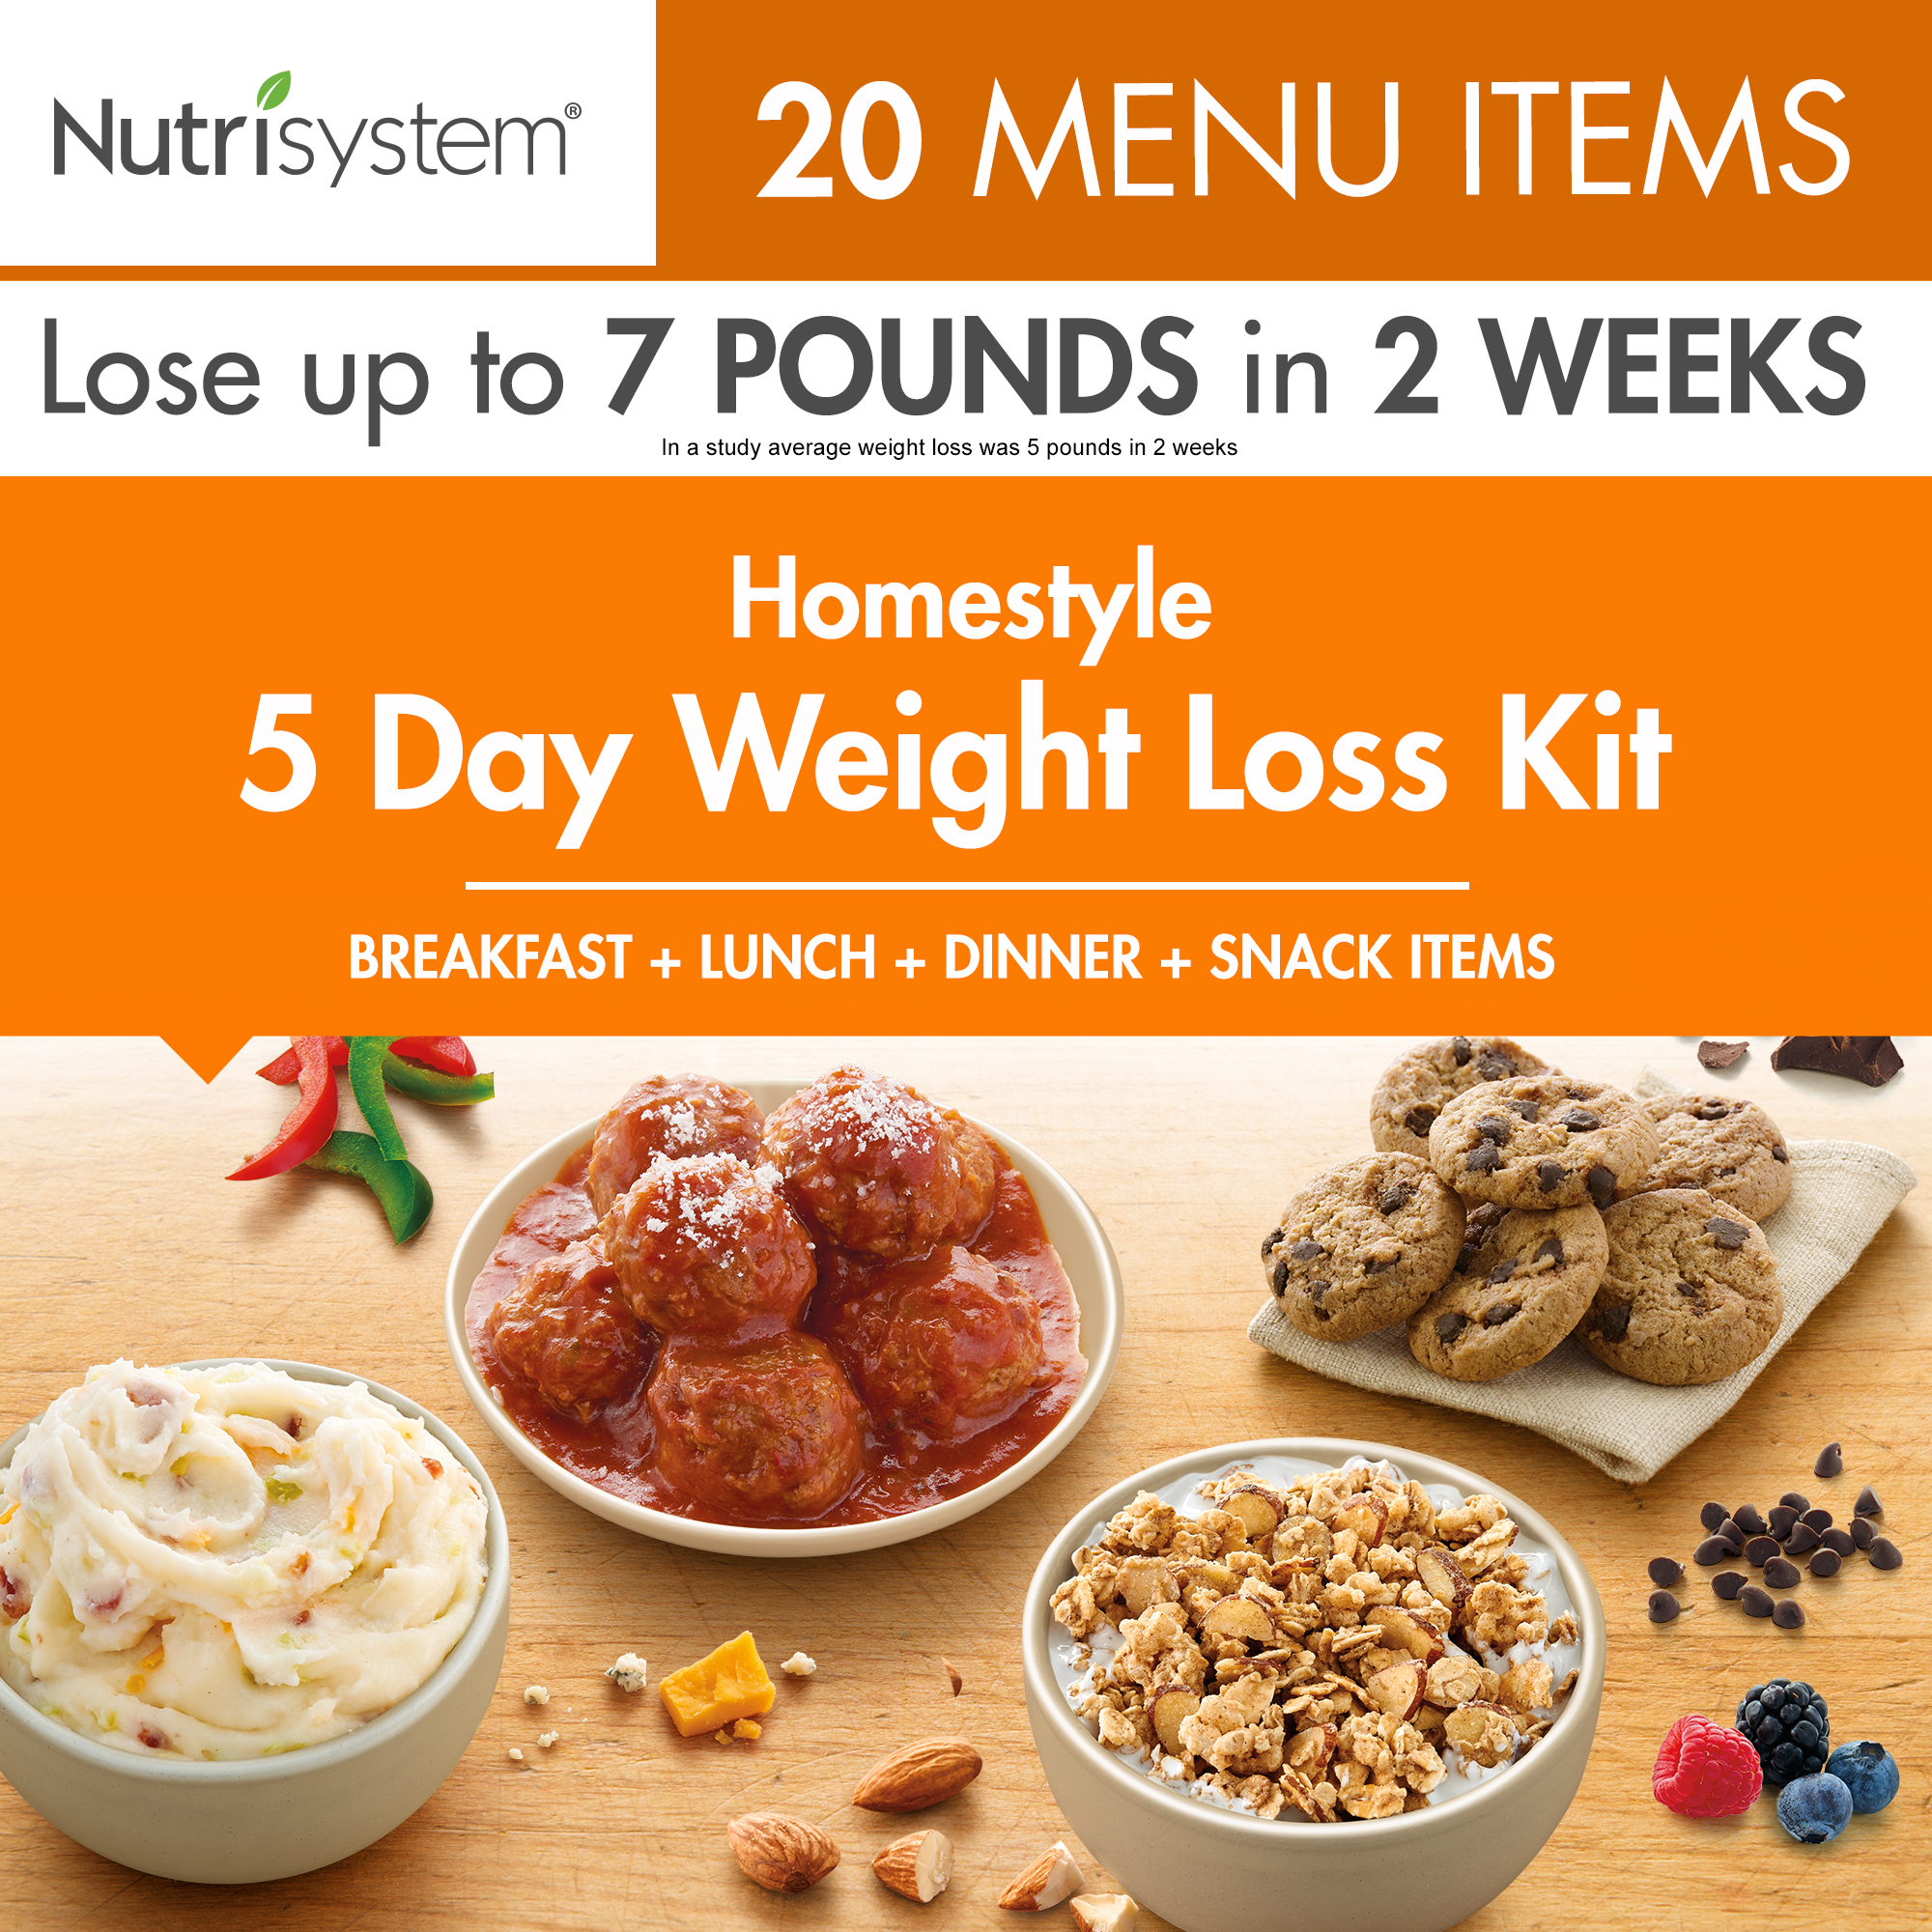 Nutrisystem 5 Day Homestyle Weight Loss Kit, 4.5 lbs, 15 Meals and 5 Snacks